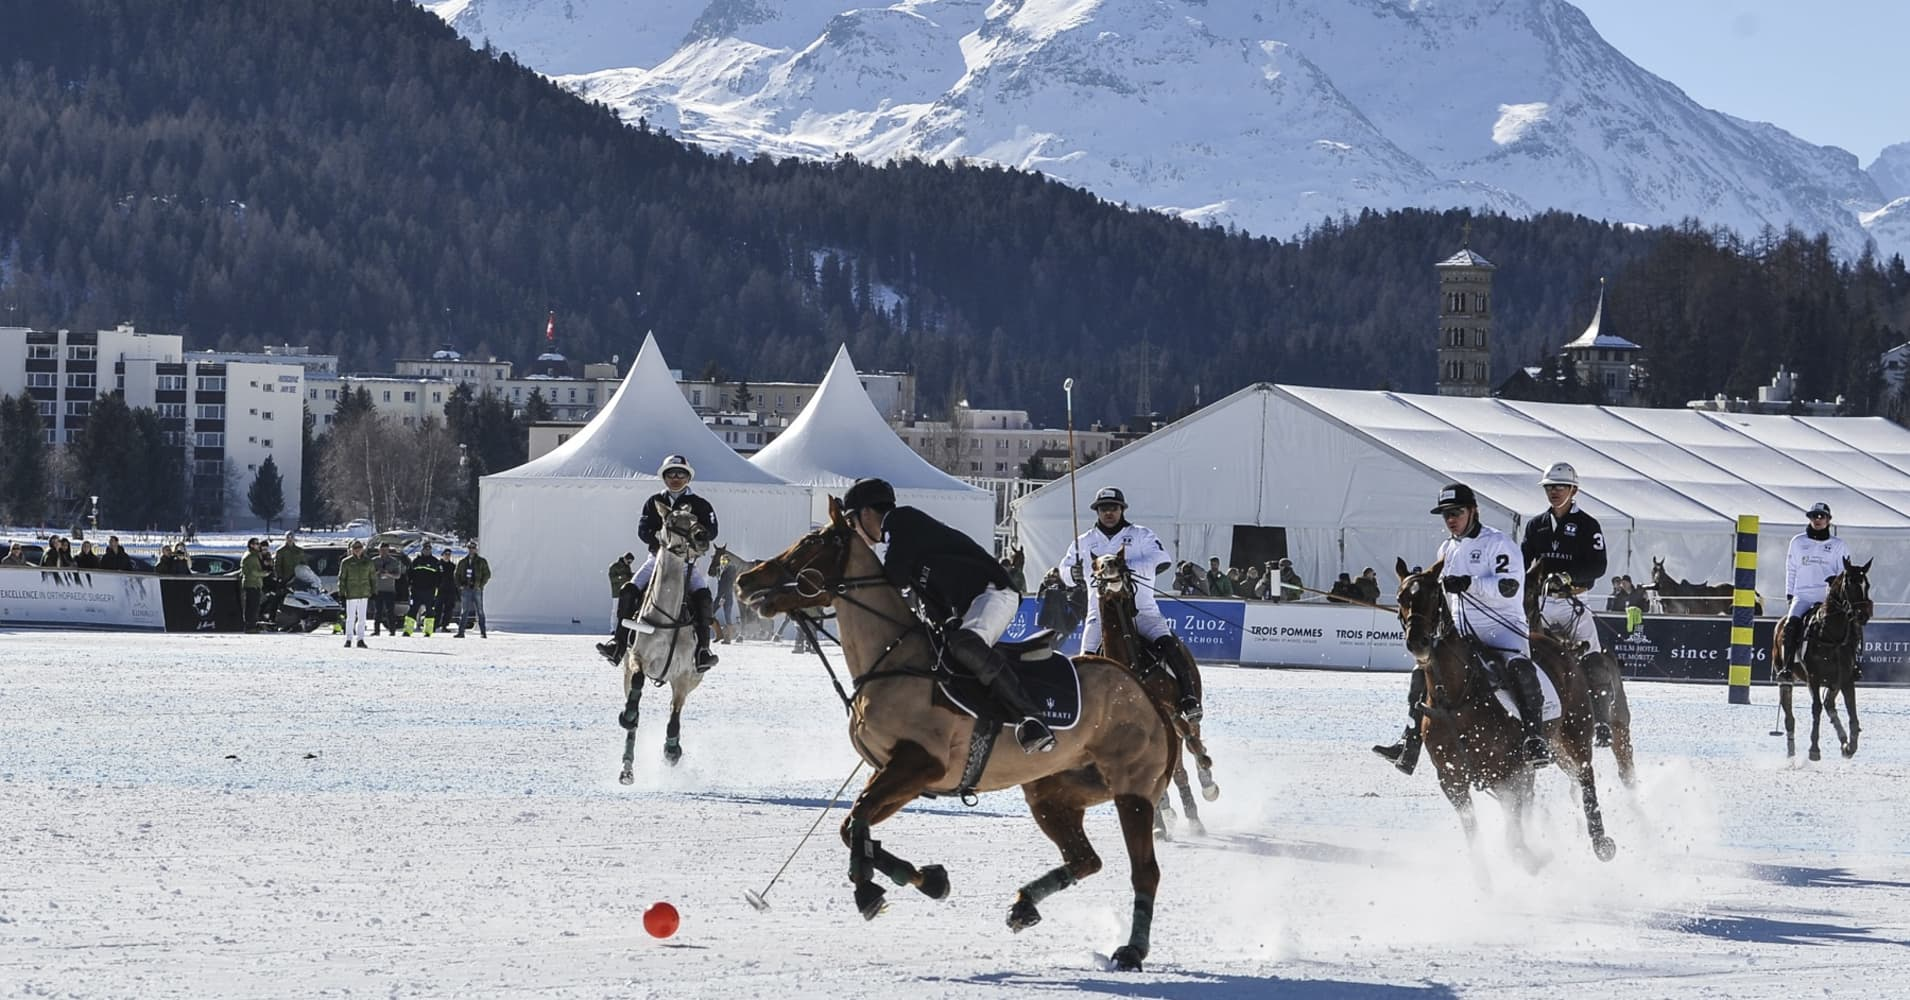 Billionaires will be attending events like the Snow Polo World Cup St. Moritz in January